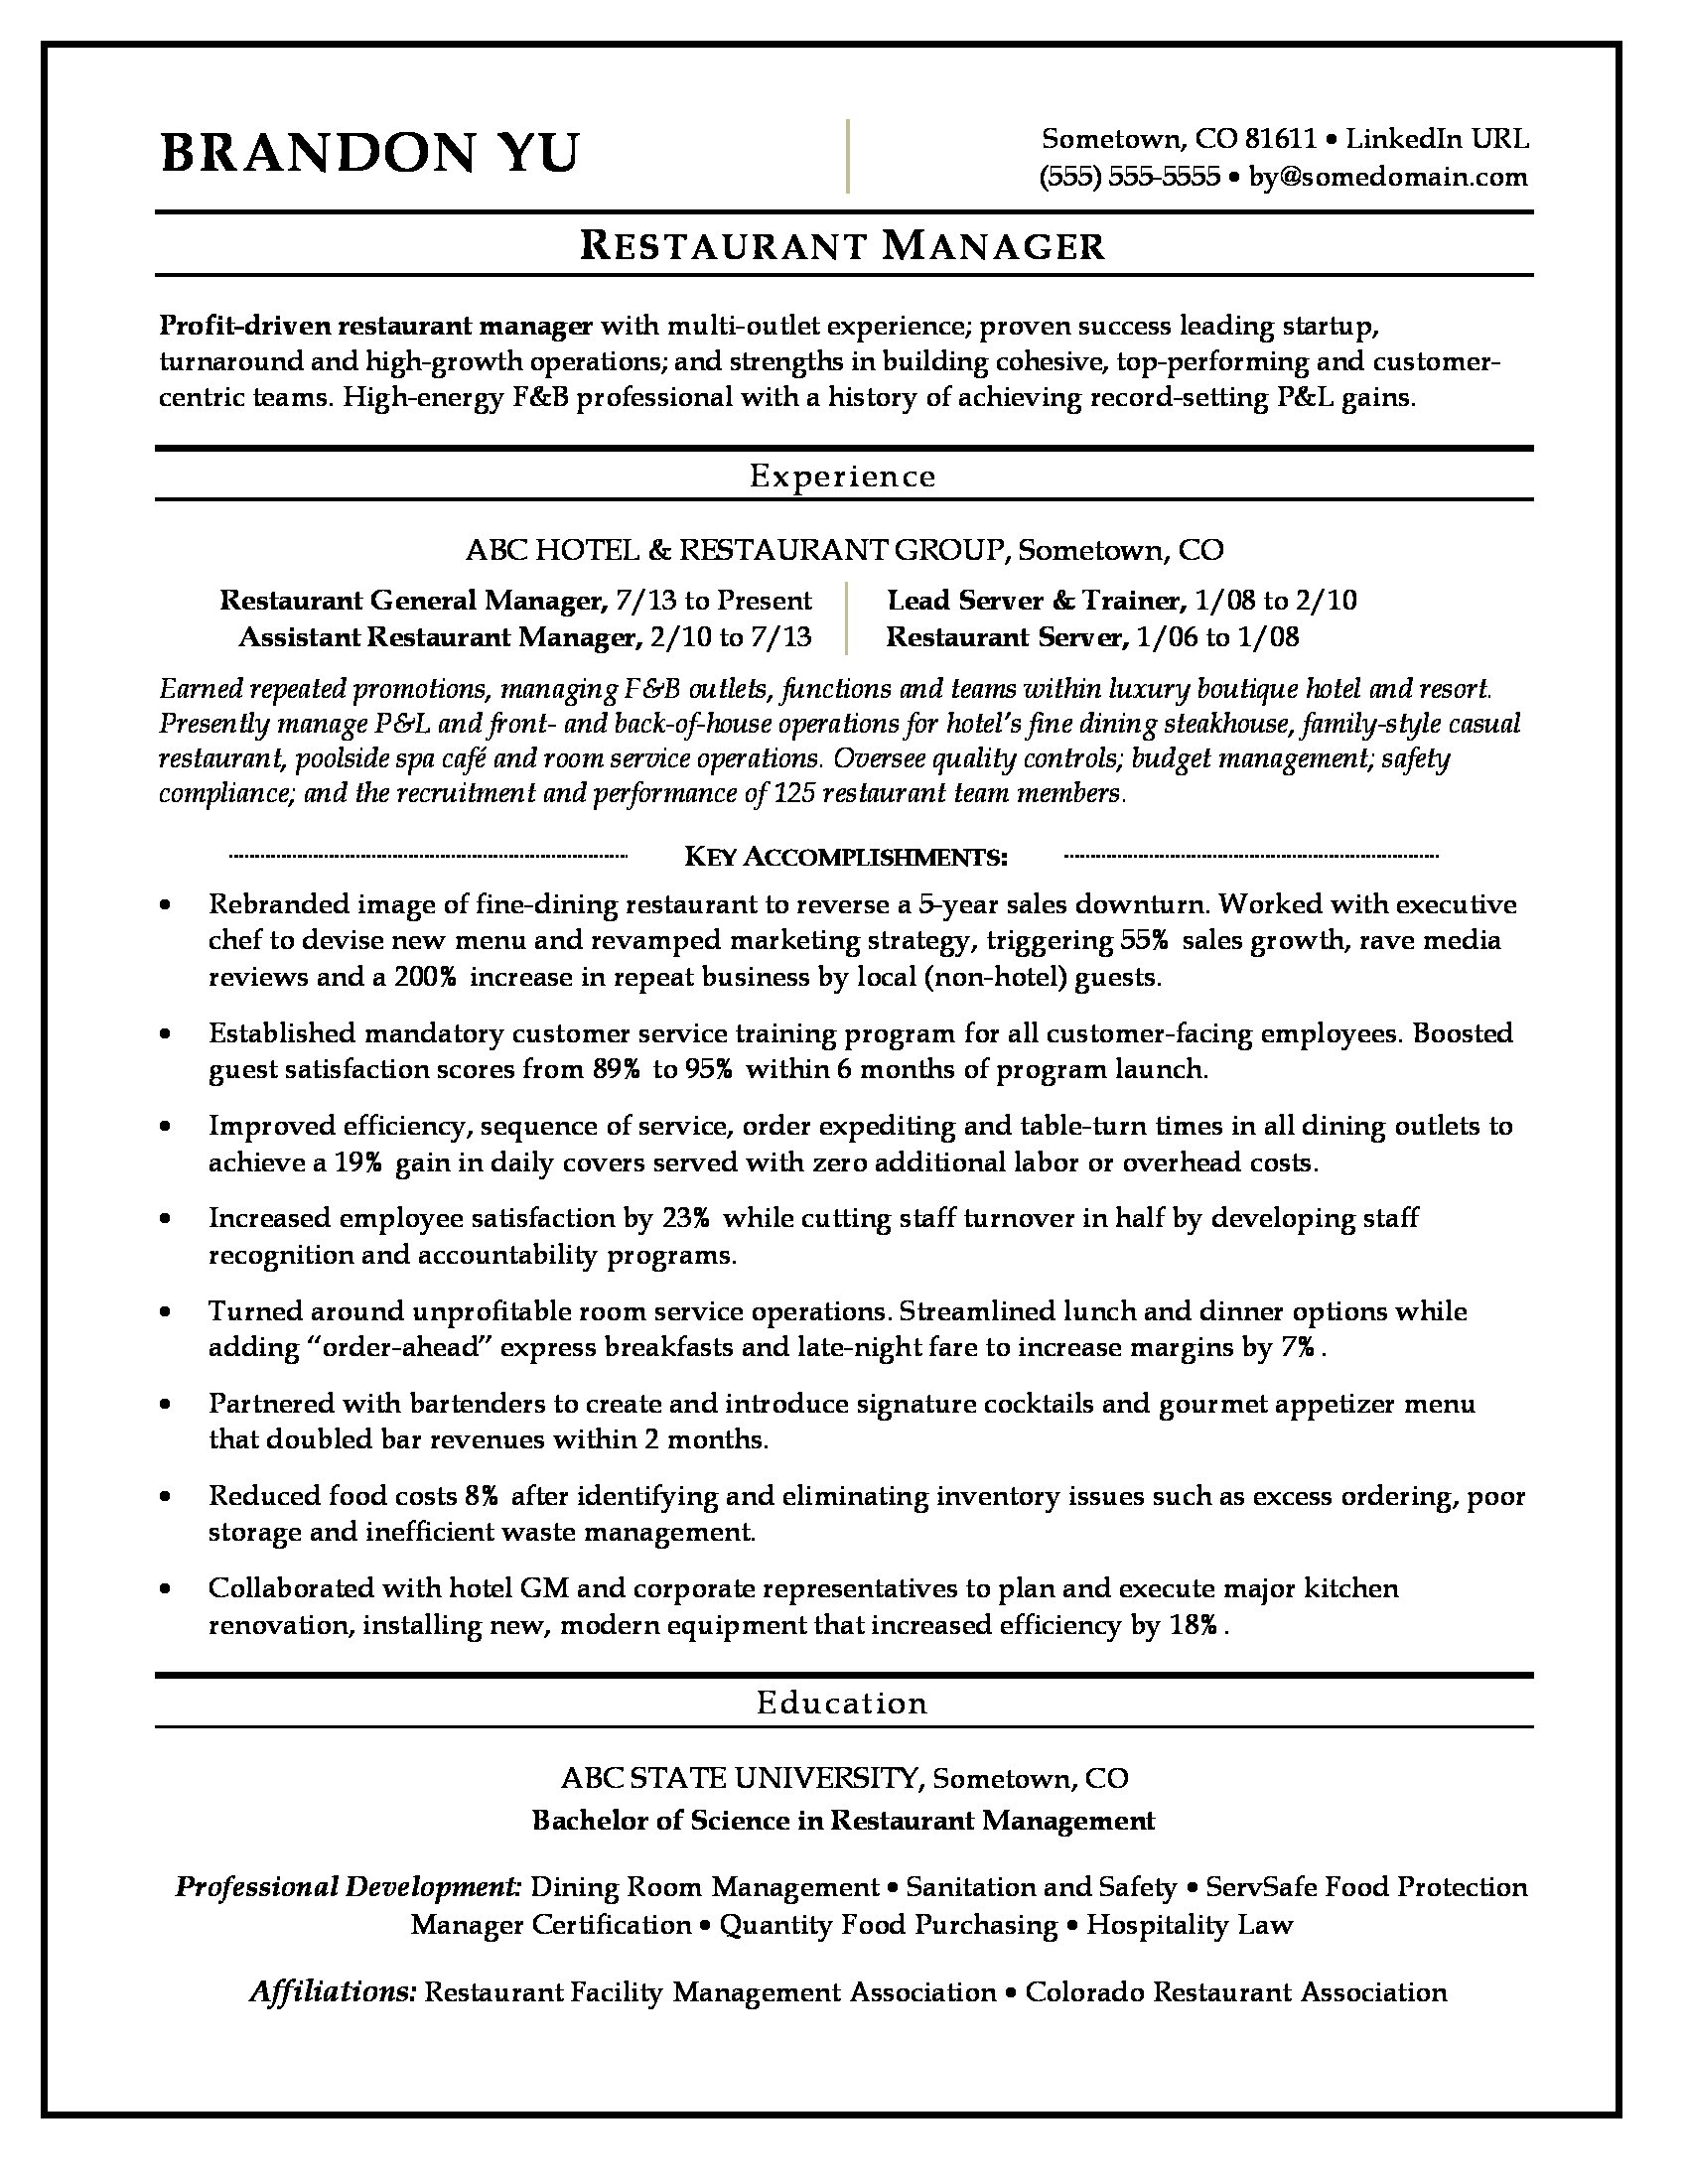 Sample resume for a restaurant manager